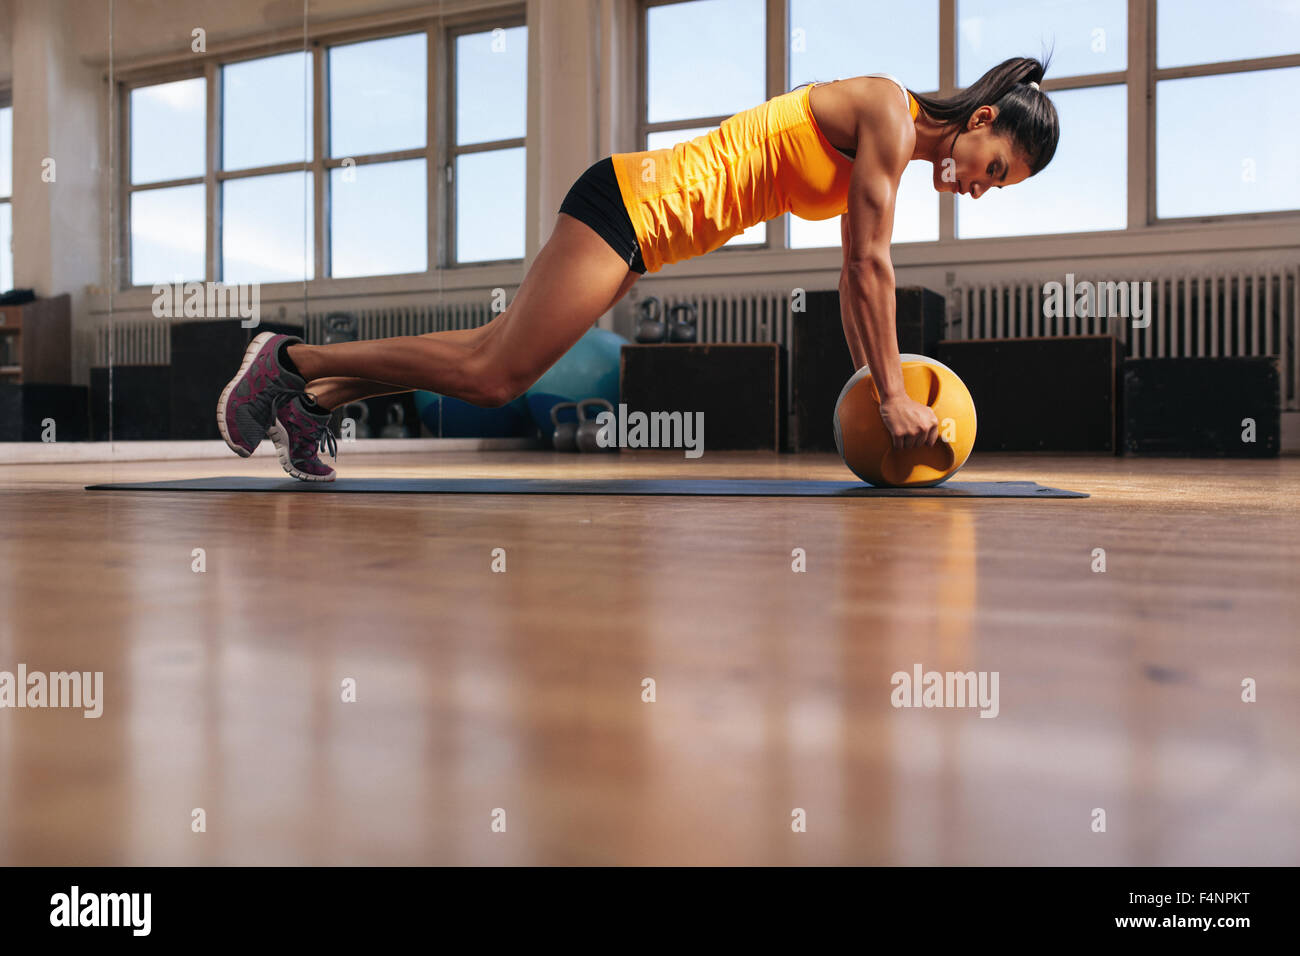 Fit young female athlete working out on her core muscles. Muscular woman exercising on fitness mat doing push ups - Stock Image